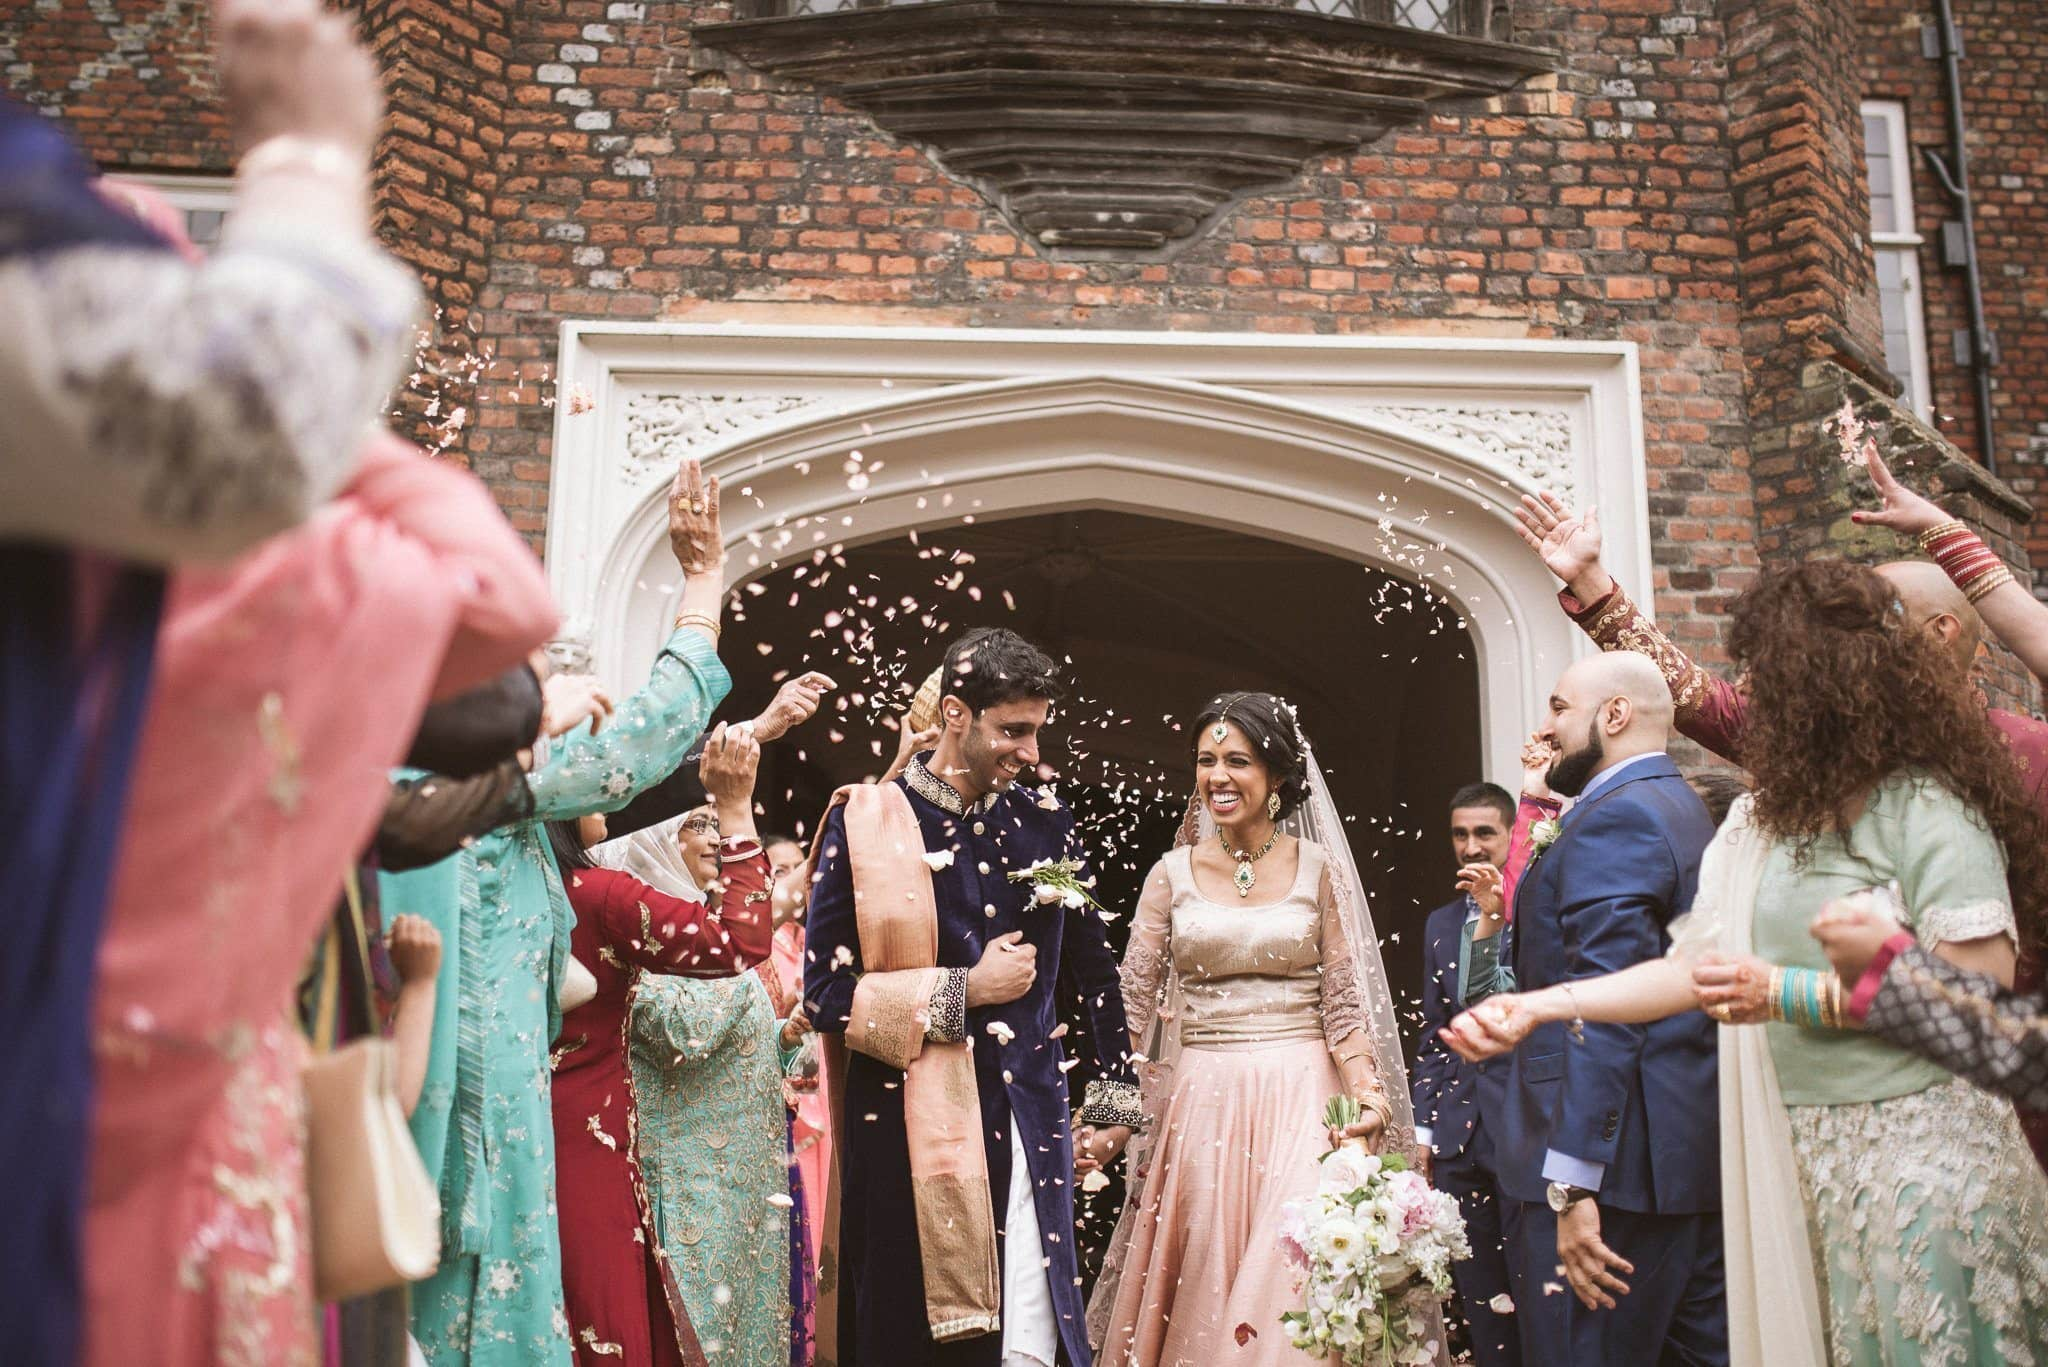 The couple emerge into the courtyard under a shower of rose petal confetti